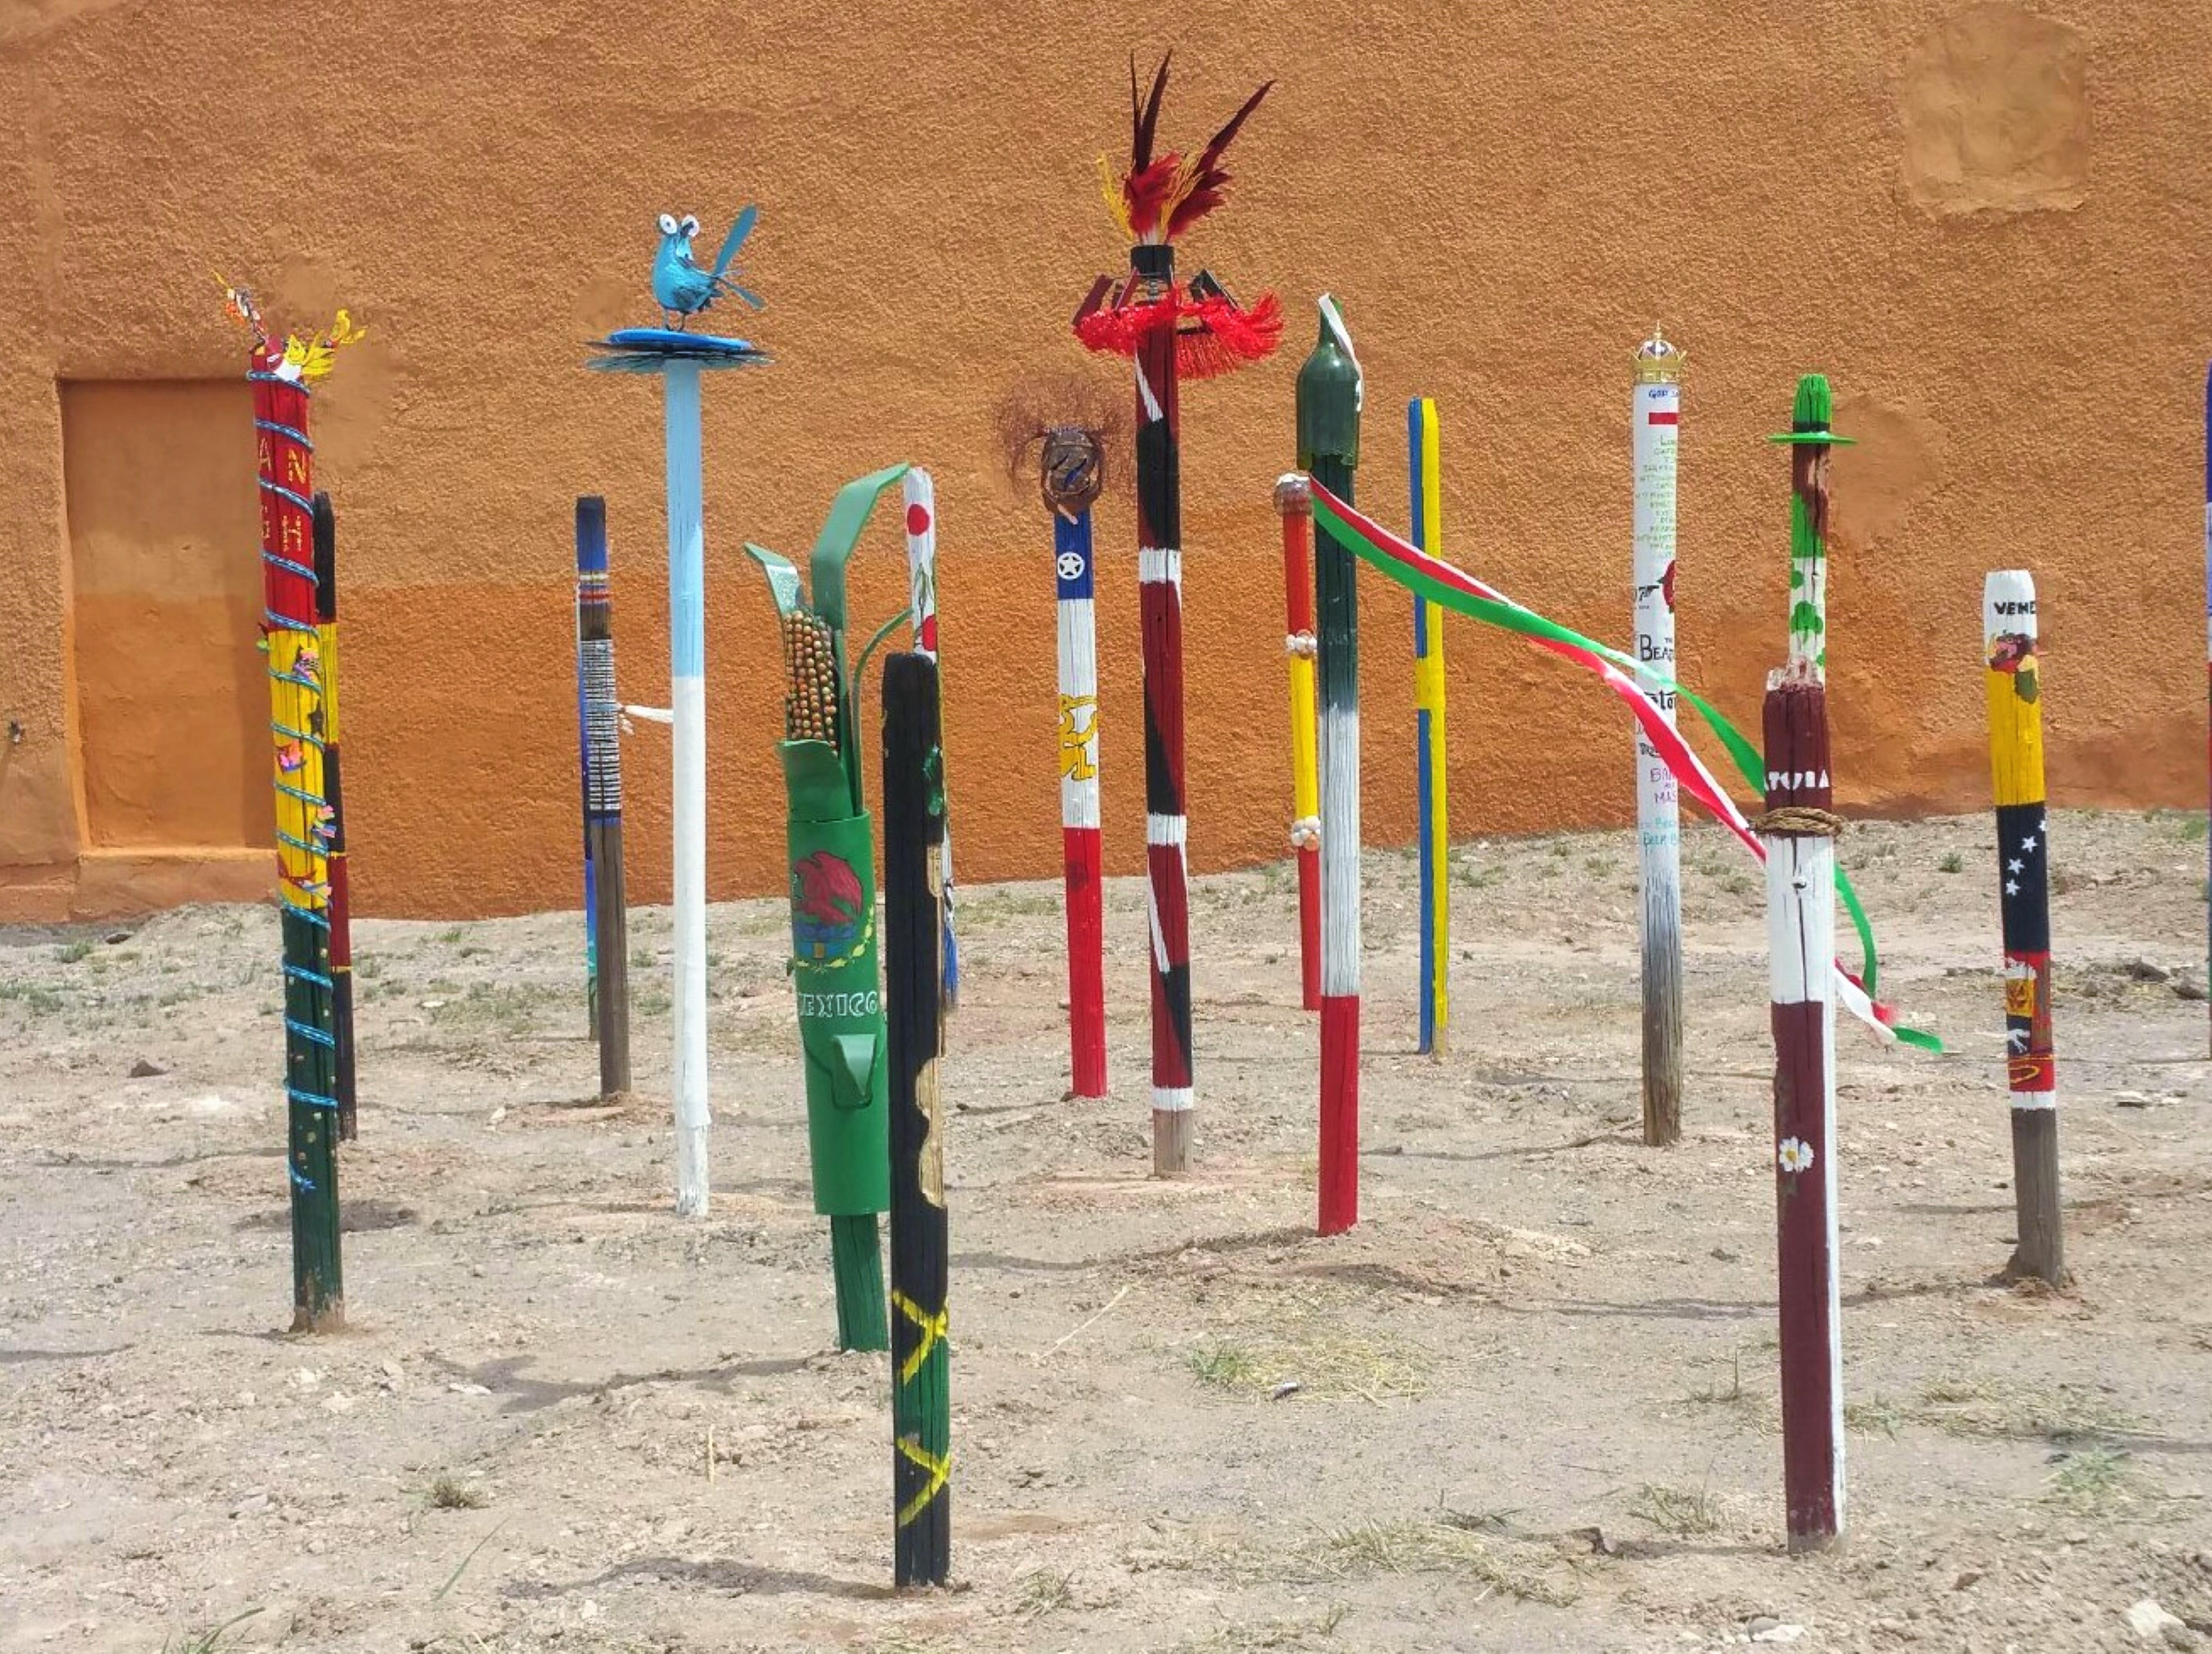 Artists from Carrizozo planted poles last year, celebrating World Art Day. The art represents different countries.